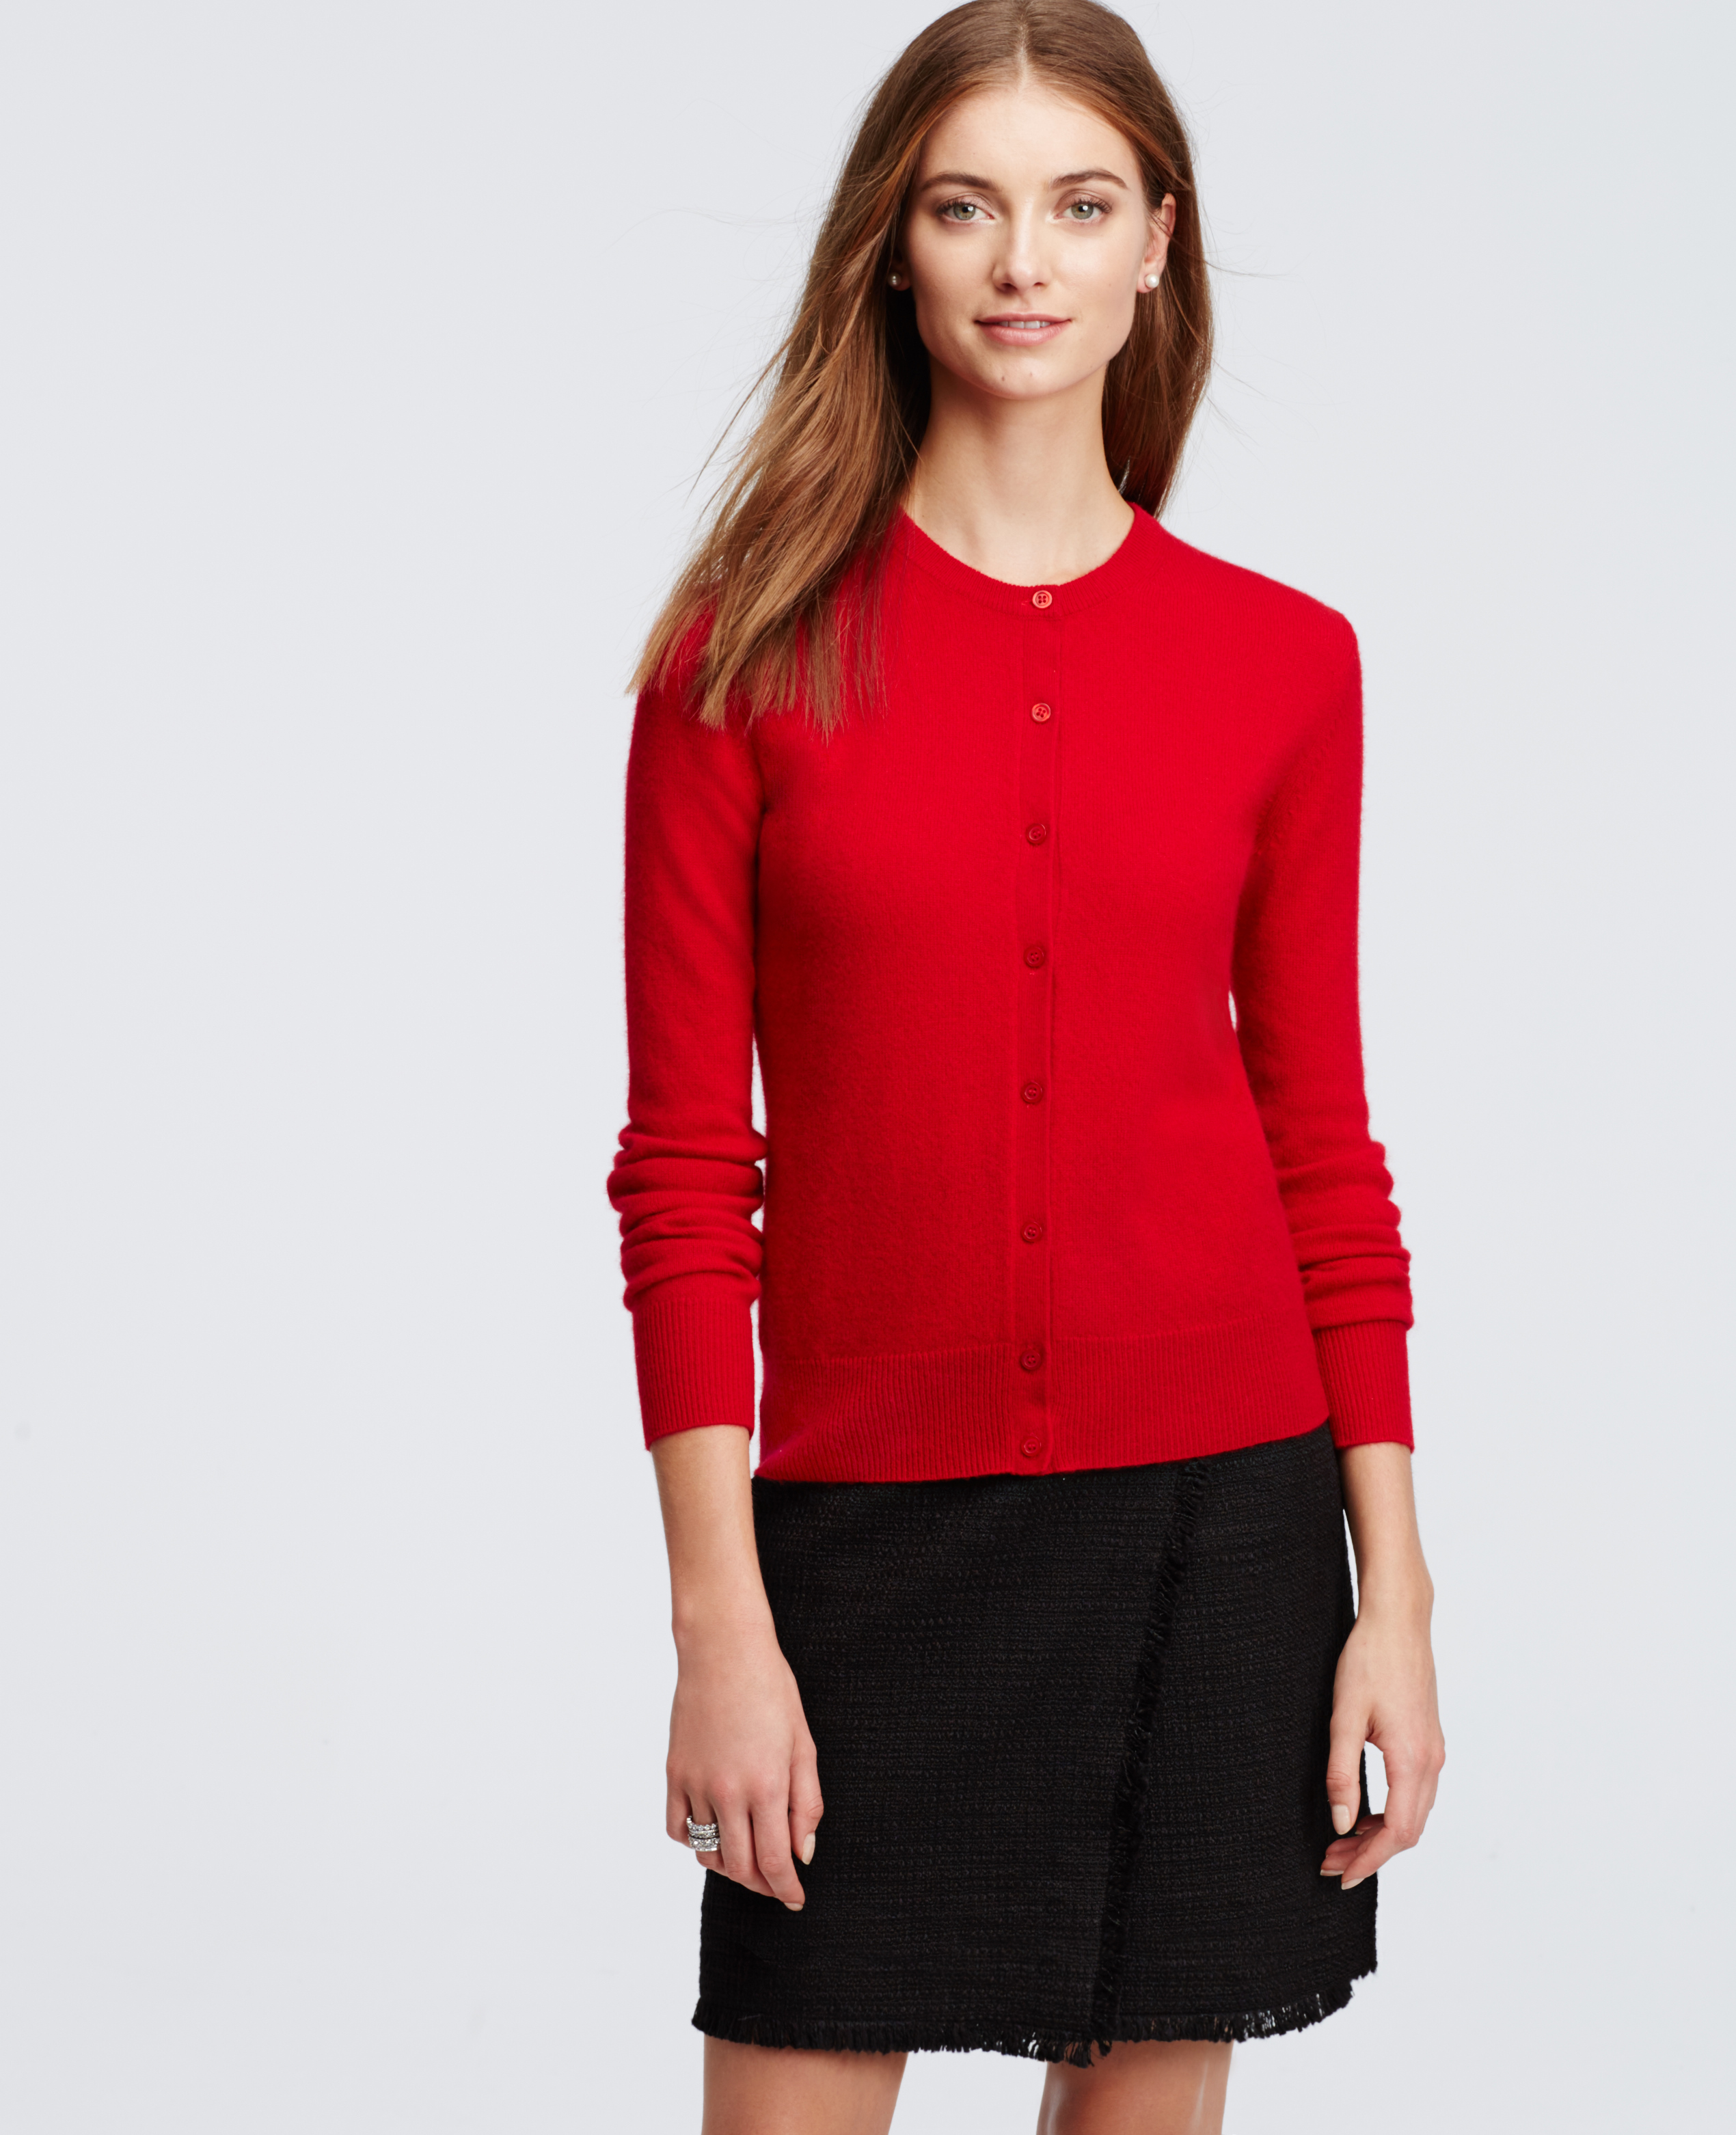 Ann taylor Cashmere Crew Neck Cardigan in Red | Lyst